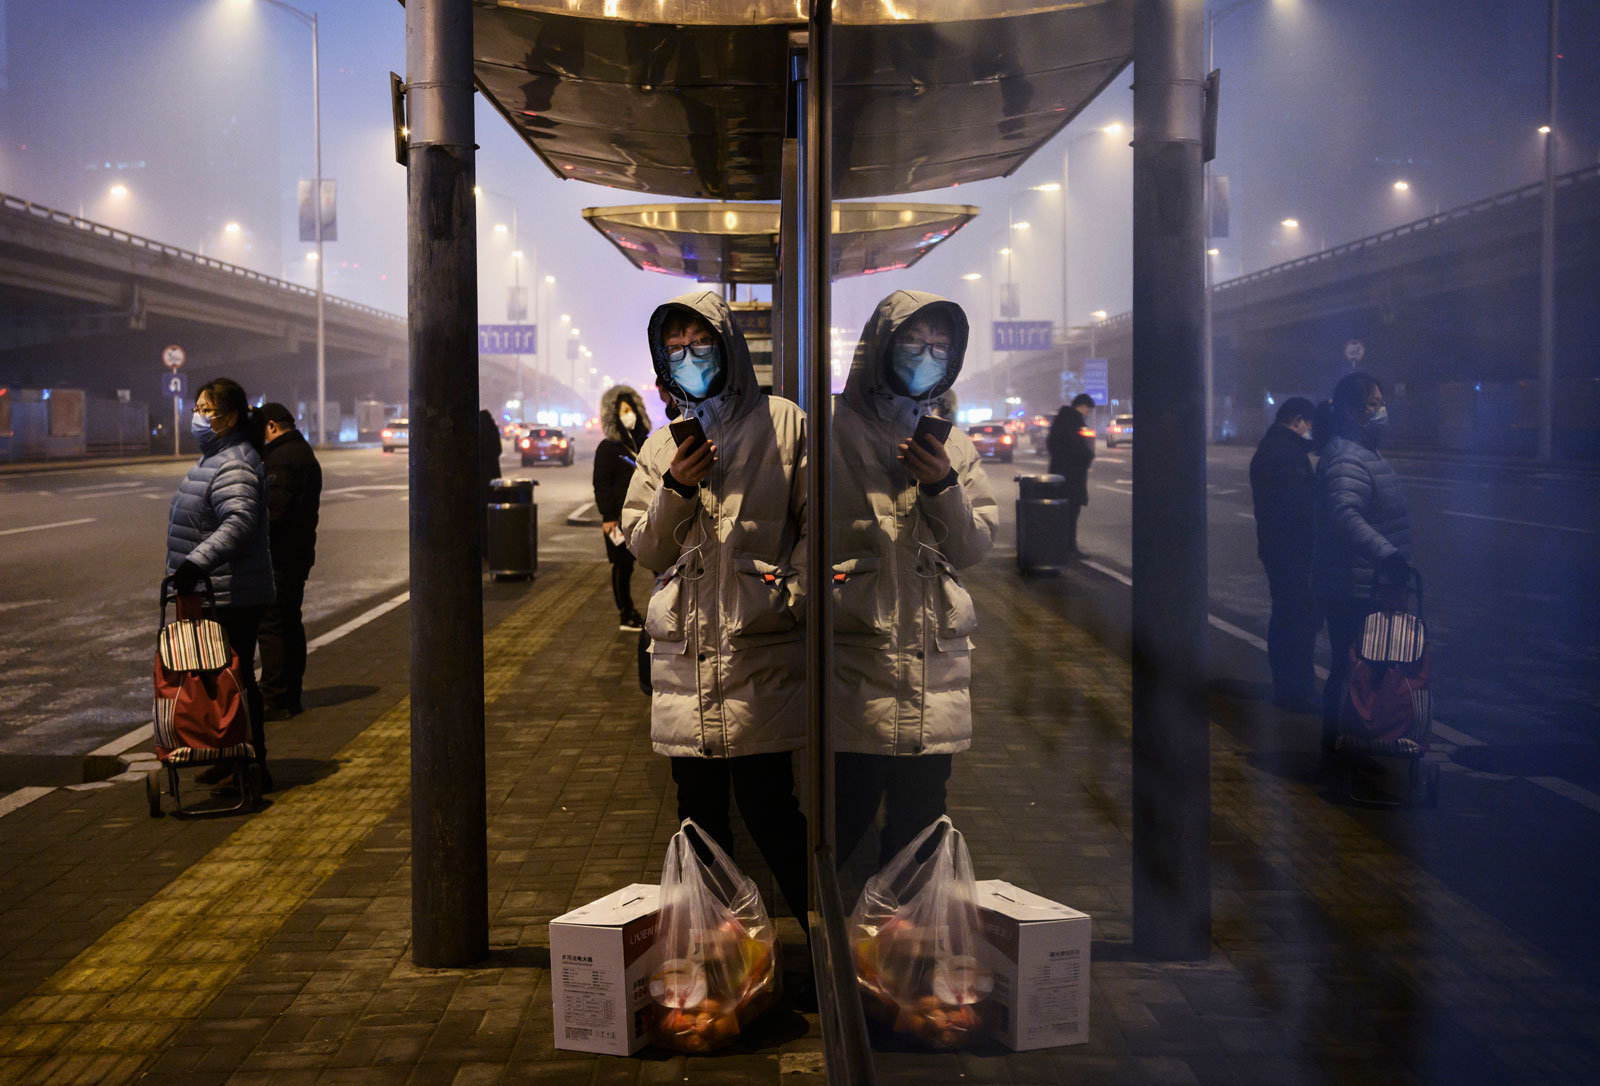 Chinese commuterswear protective masks as they wait for a bus at a usually busy stop on February 13, in Beijing, China.